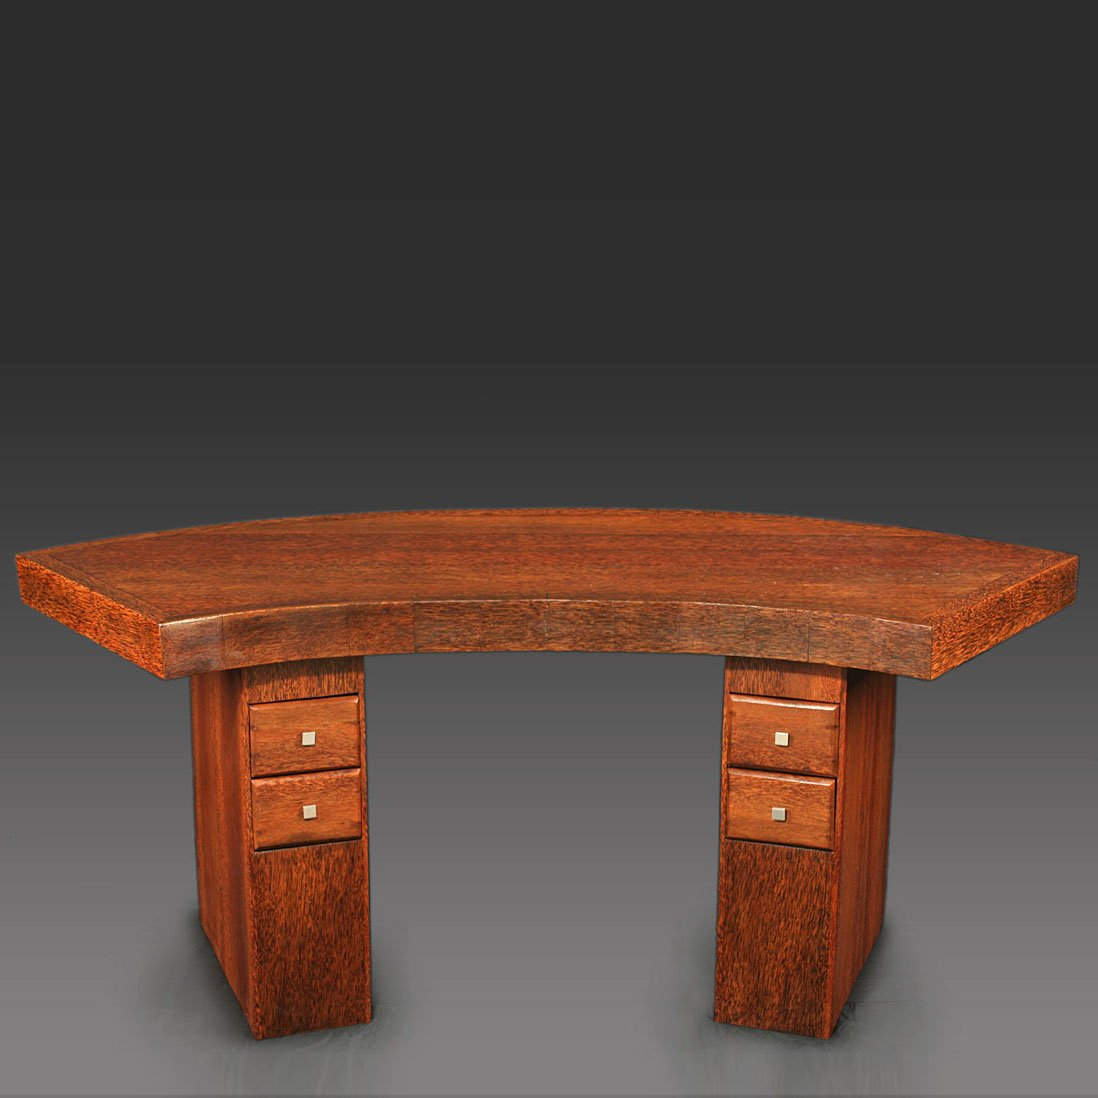 Curved art deco palmwood desk 1930s for sale at pamono for Meuble art deco 1930